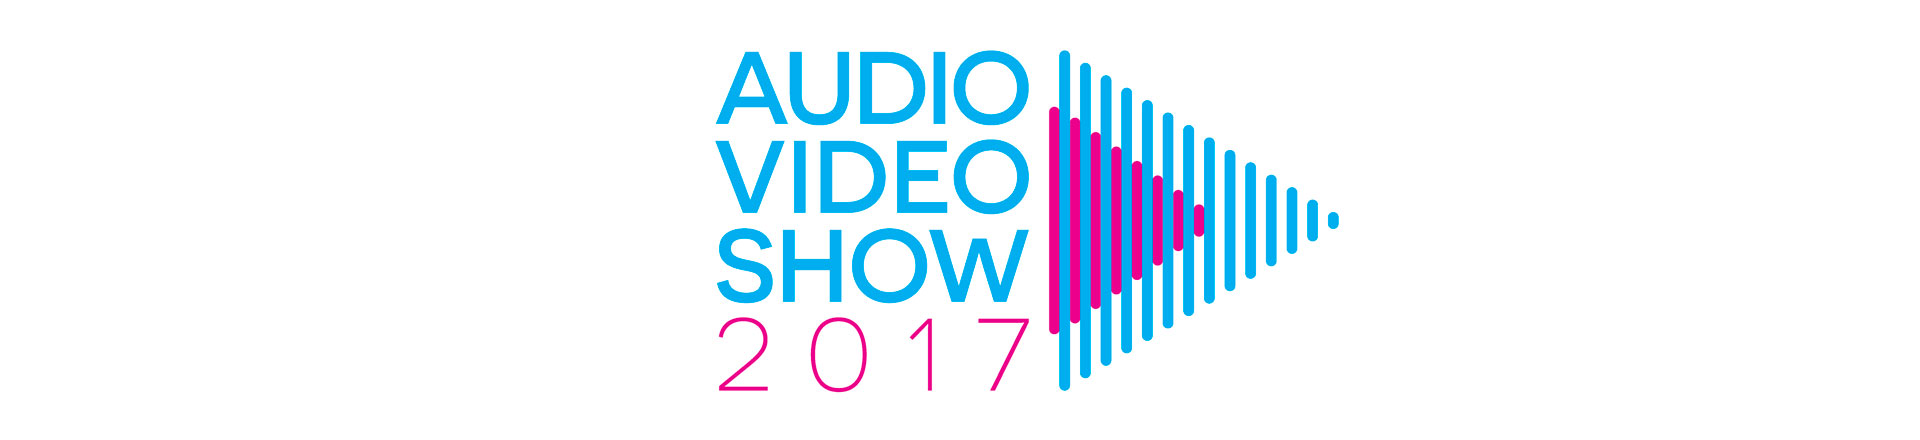 XXI AUDIO VIDEO SHOW się zbliża...